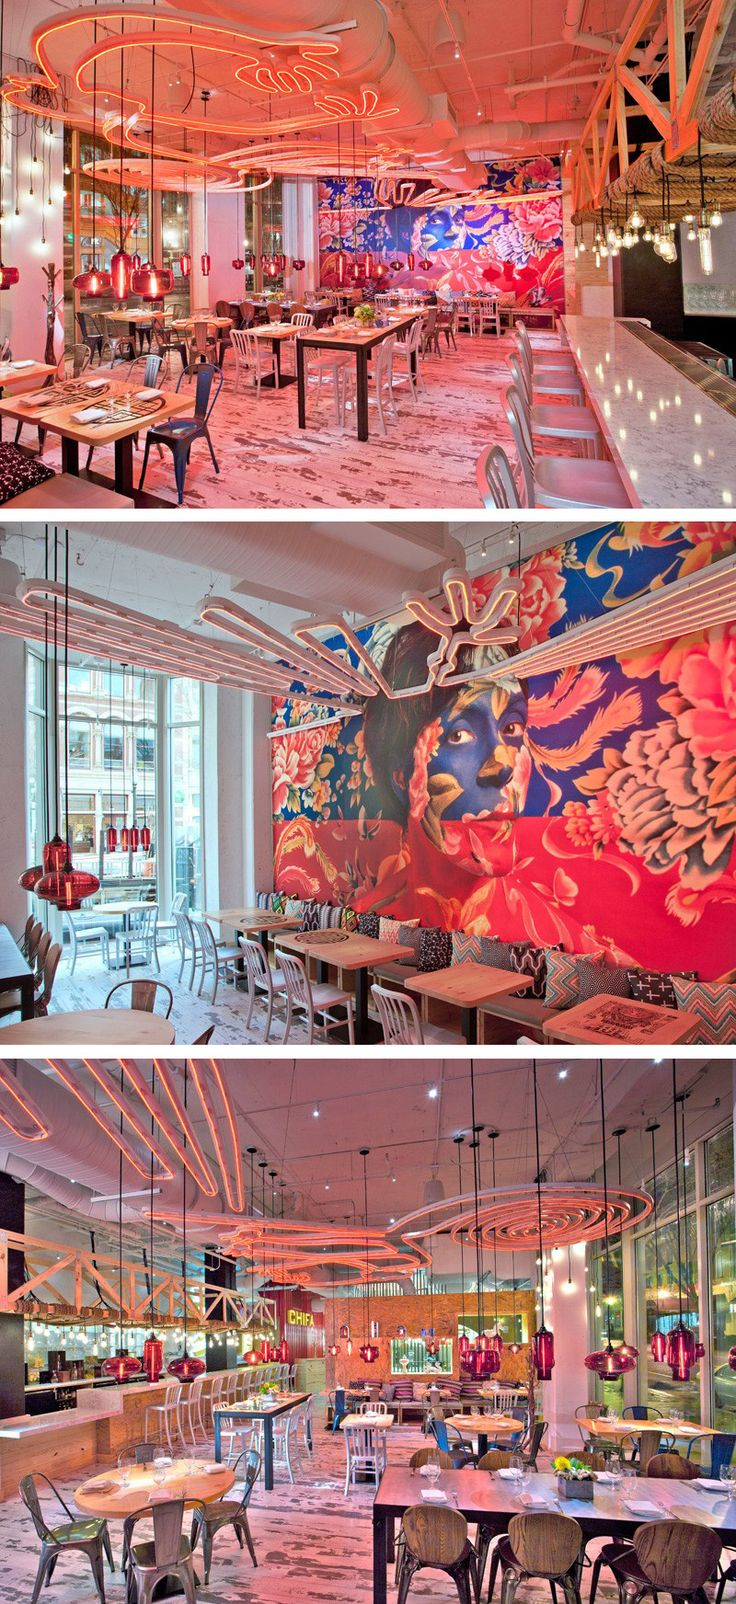 A large mural covers the wall of this brightly colored restaurant.